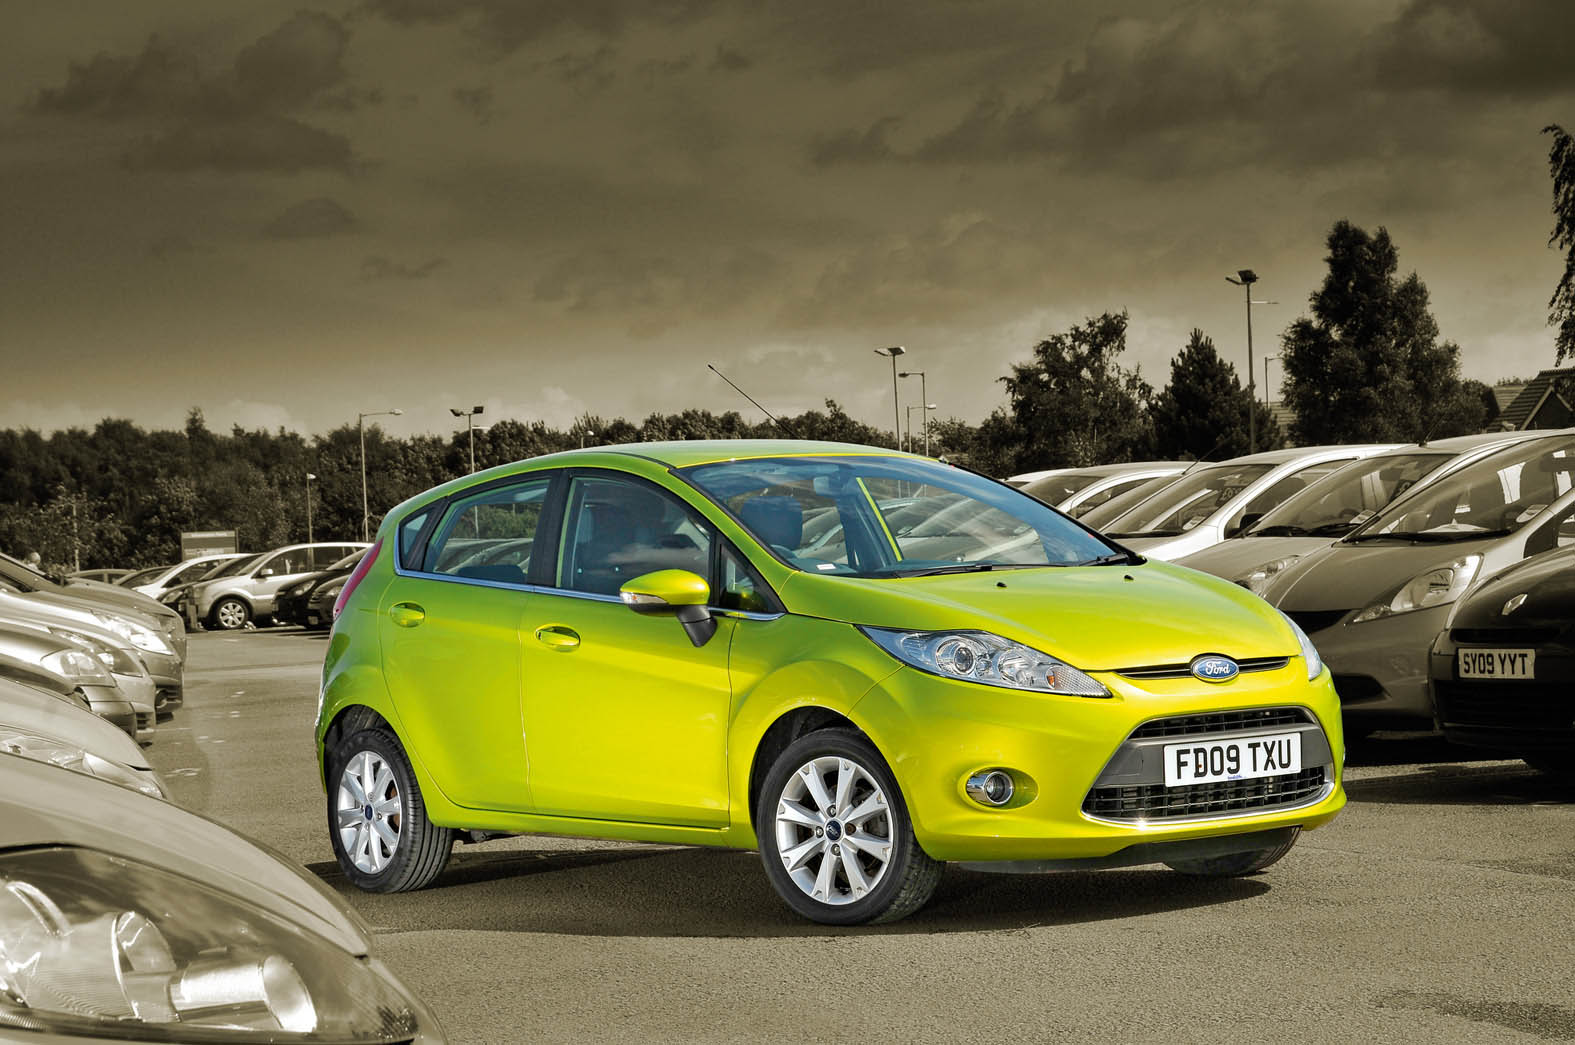 Ford Fiesta Is Named The Top Used Car Of 2012